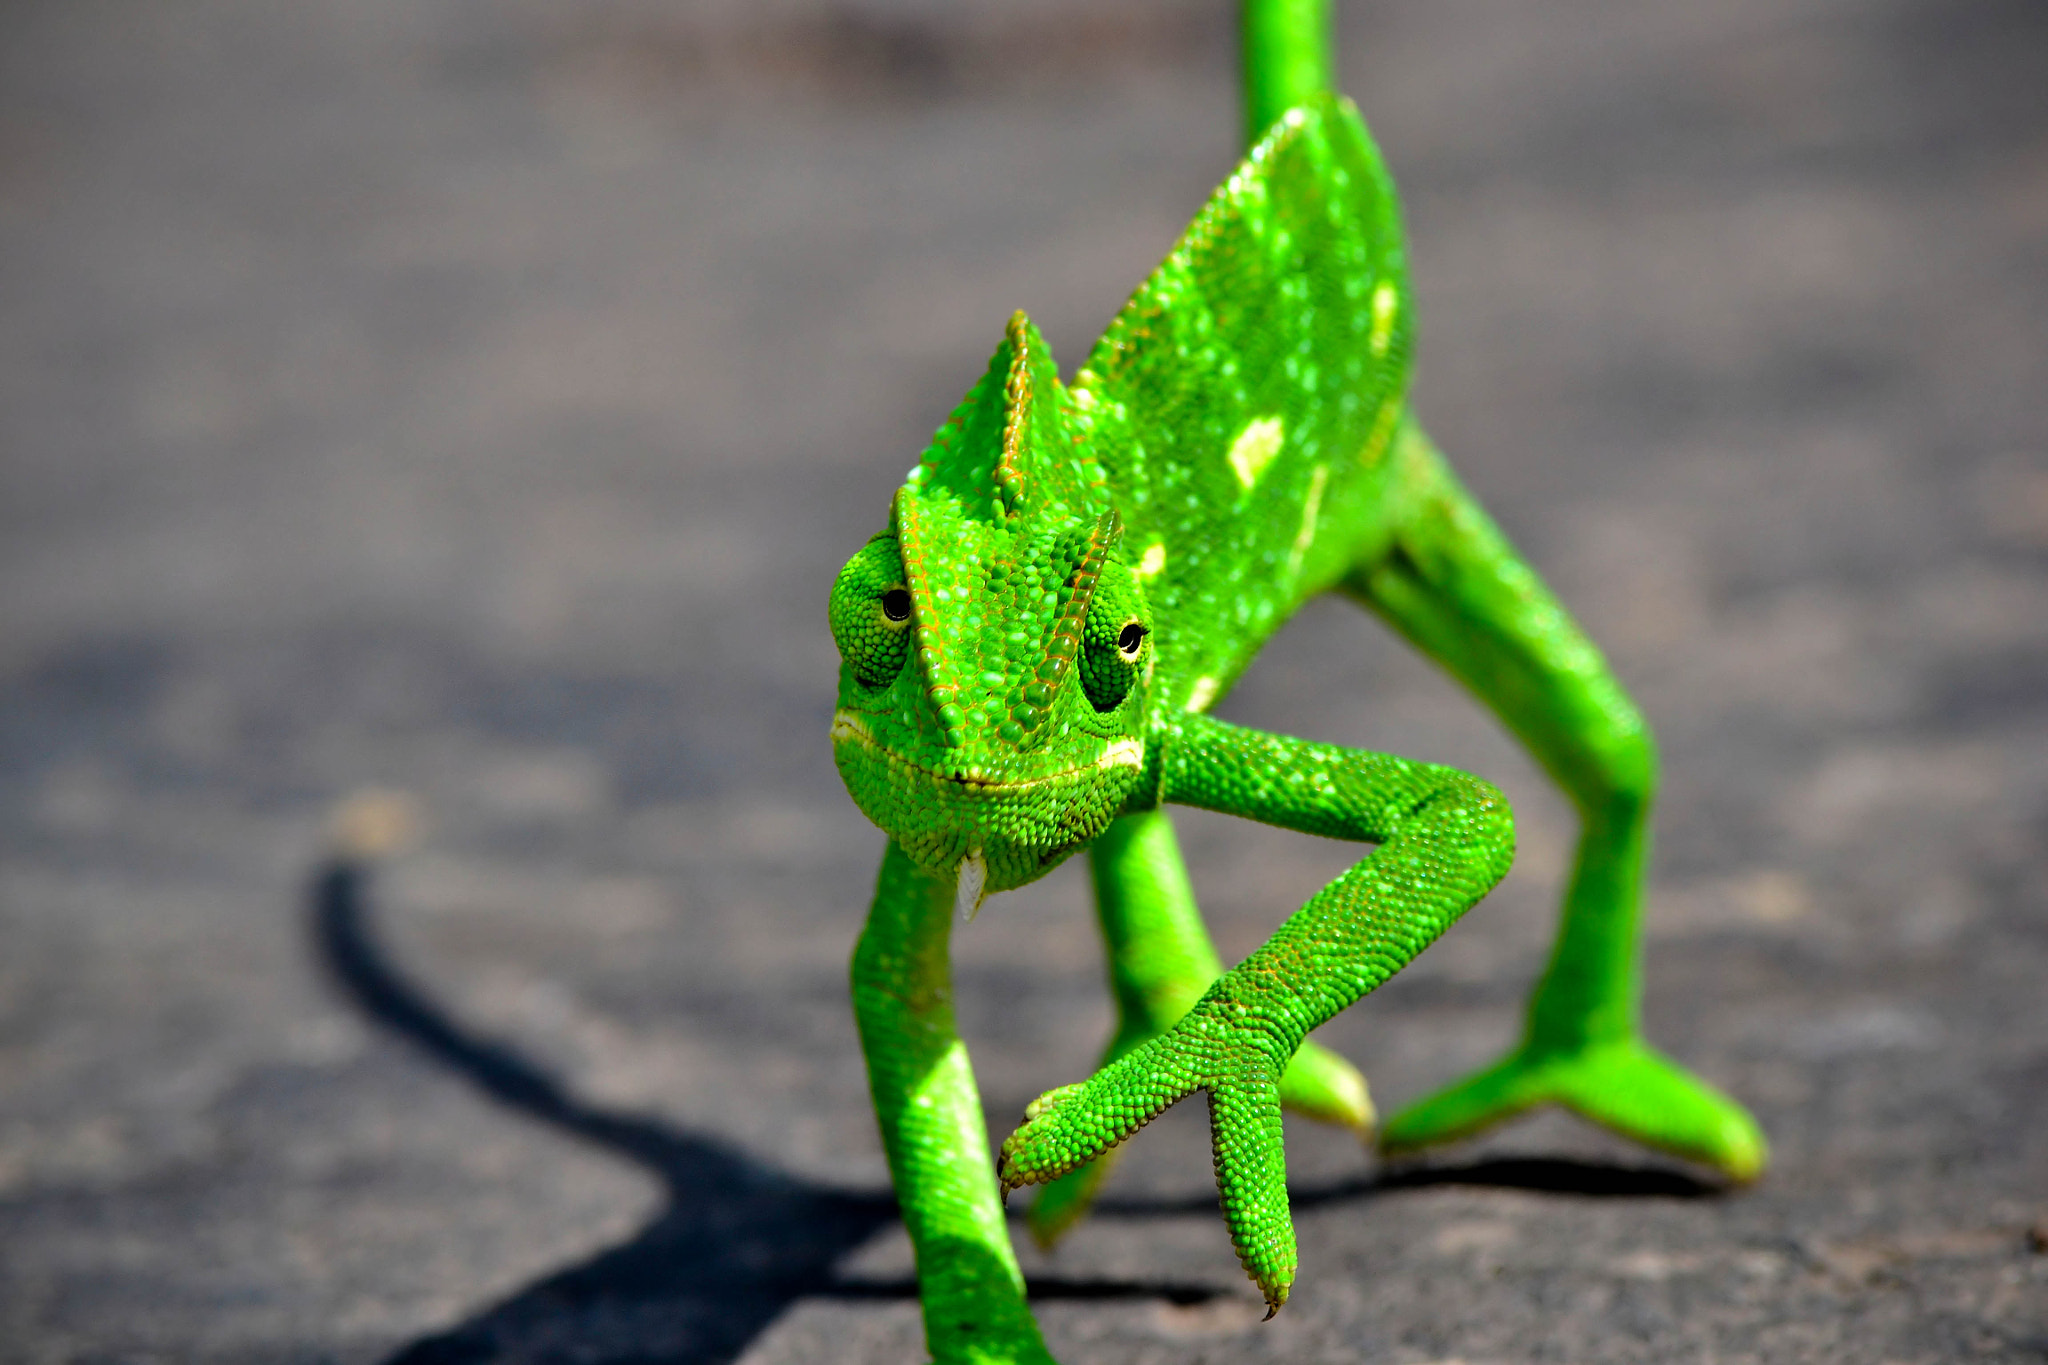 Photograph Chameleon by Geet Tryambake on 500px